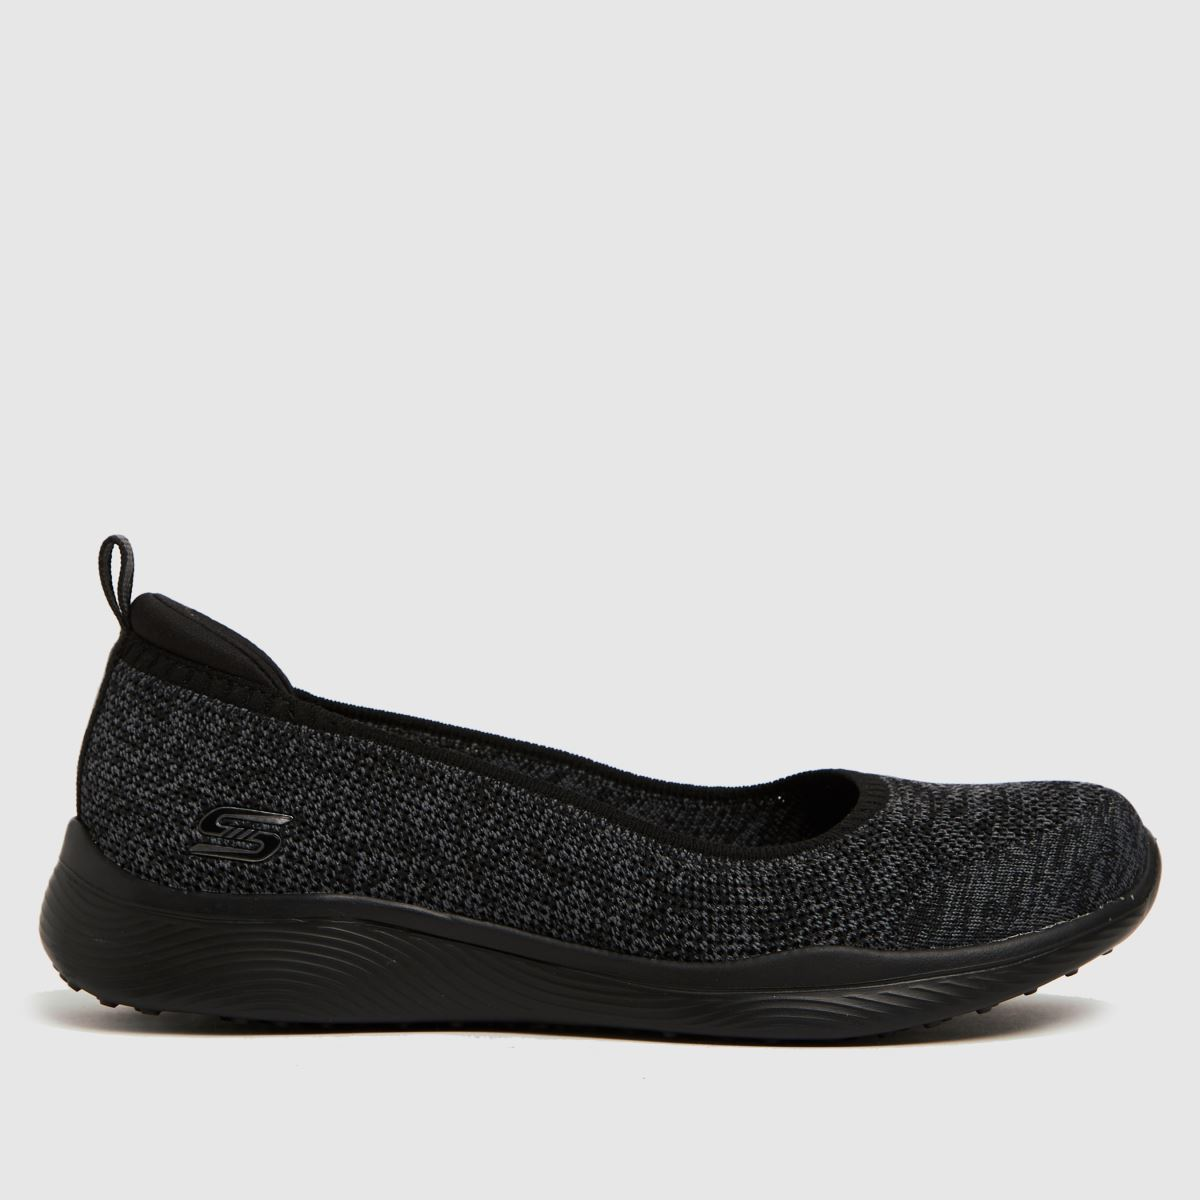 SKECHERS Black Microburst 2.0 Iconic Trainers